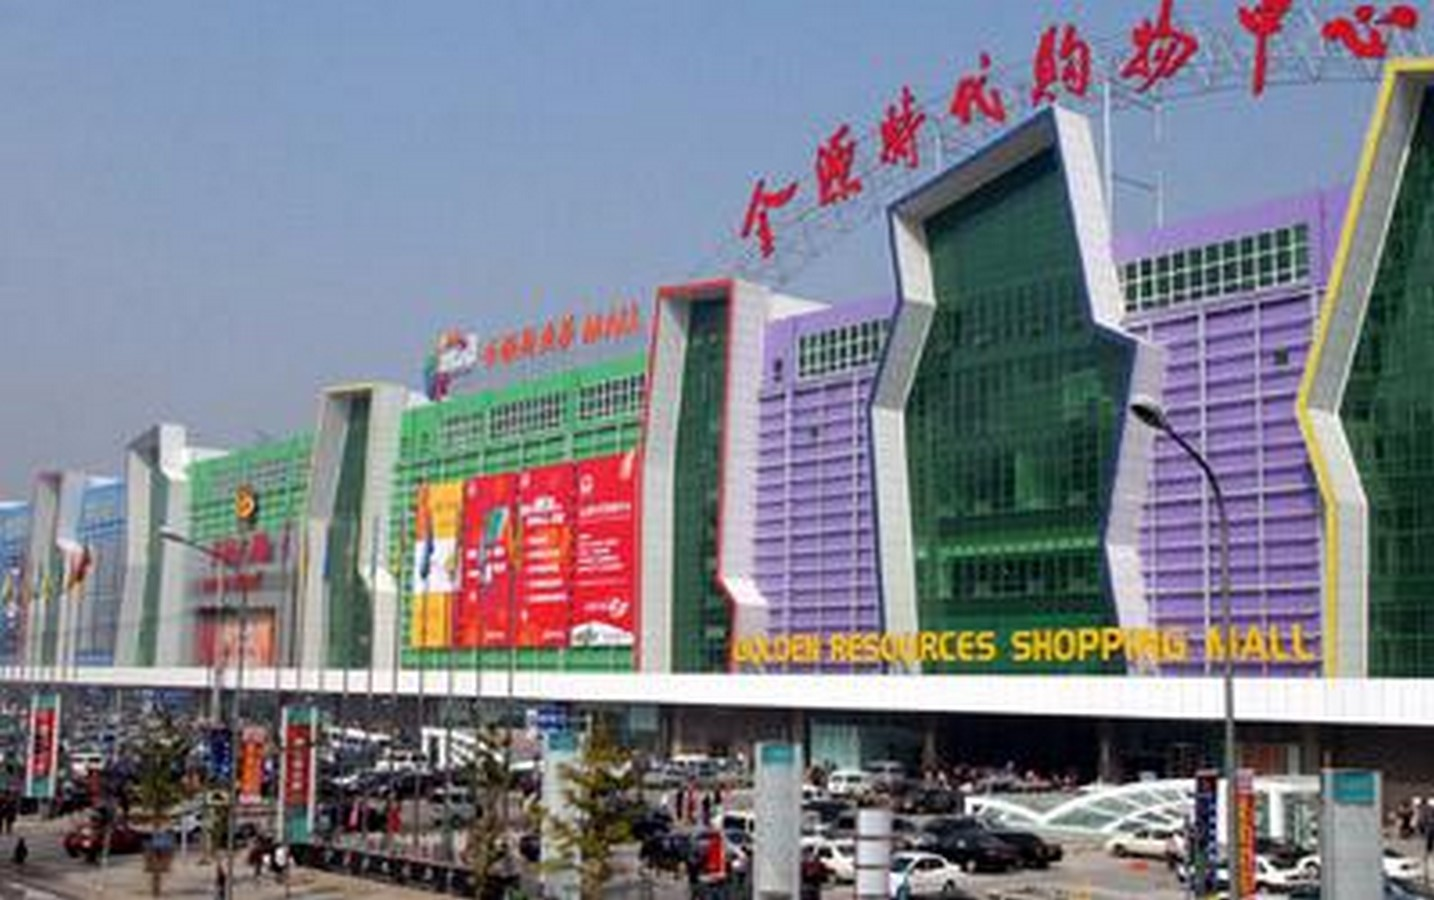 Golden Resources Shopping Mall - Haidian District, Beijing, China - Sheet2